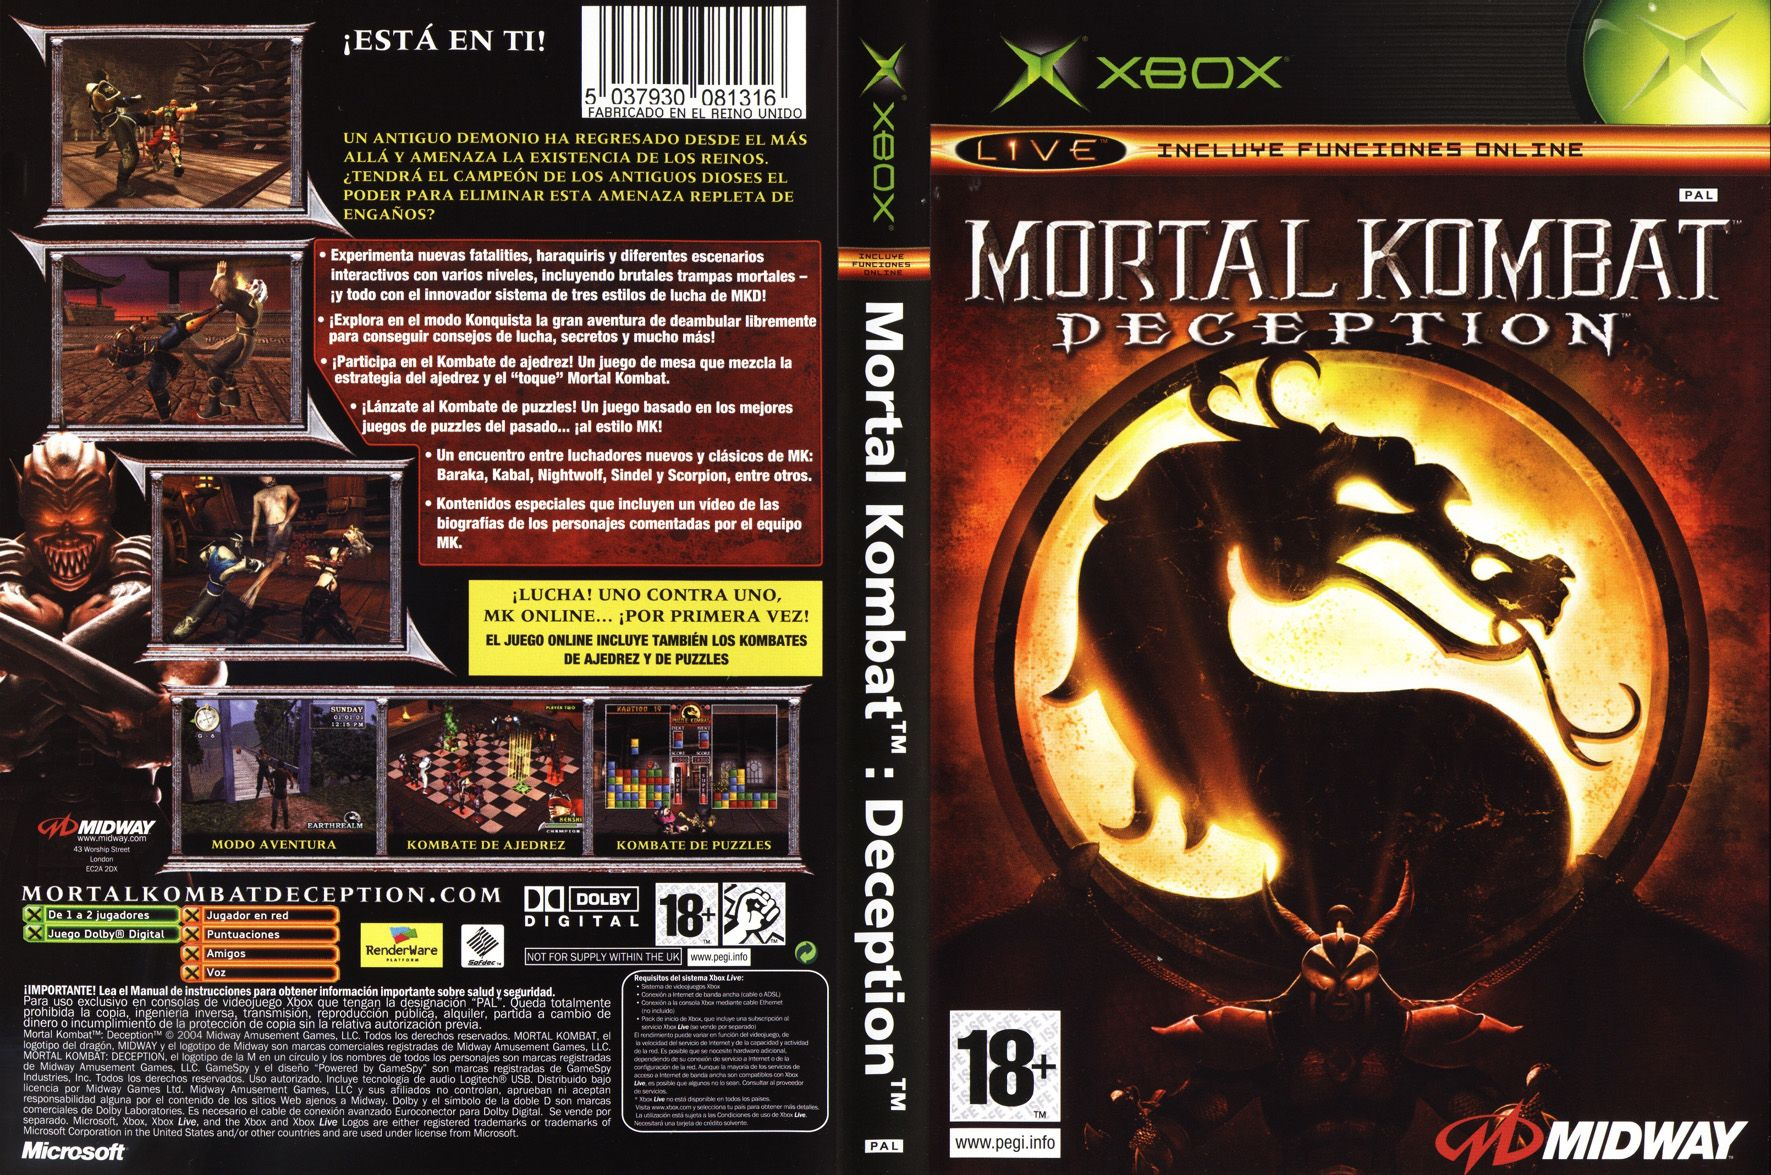 Nude patch mortal kombat for xbox hentai scenes